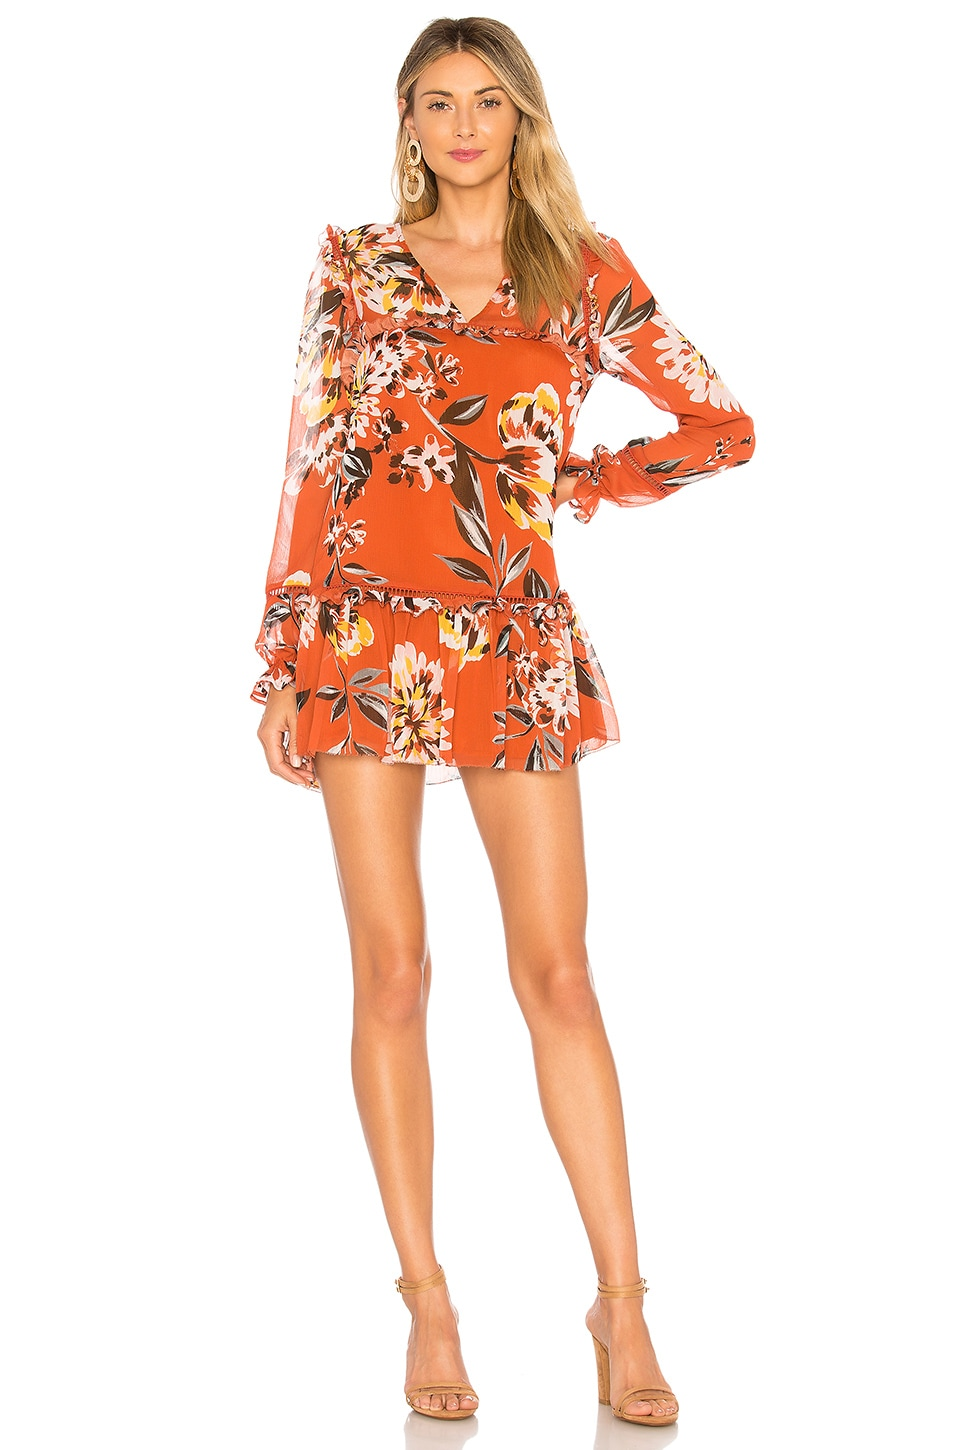 Tularosa Lara Dress in Orange Dahlia Floral